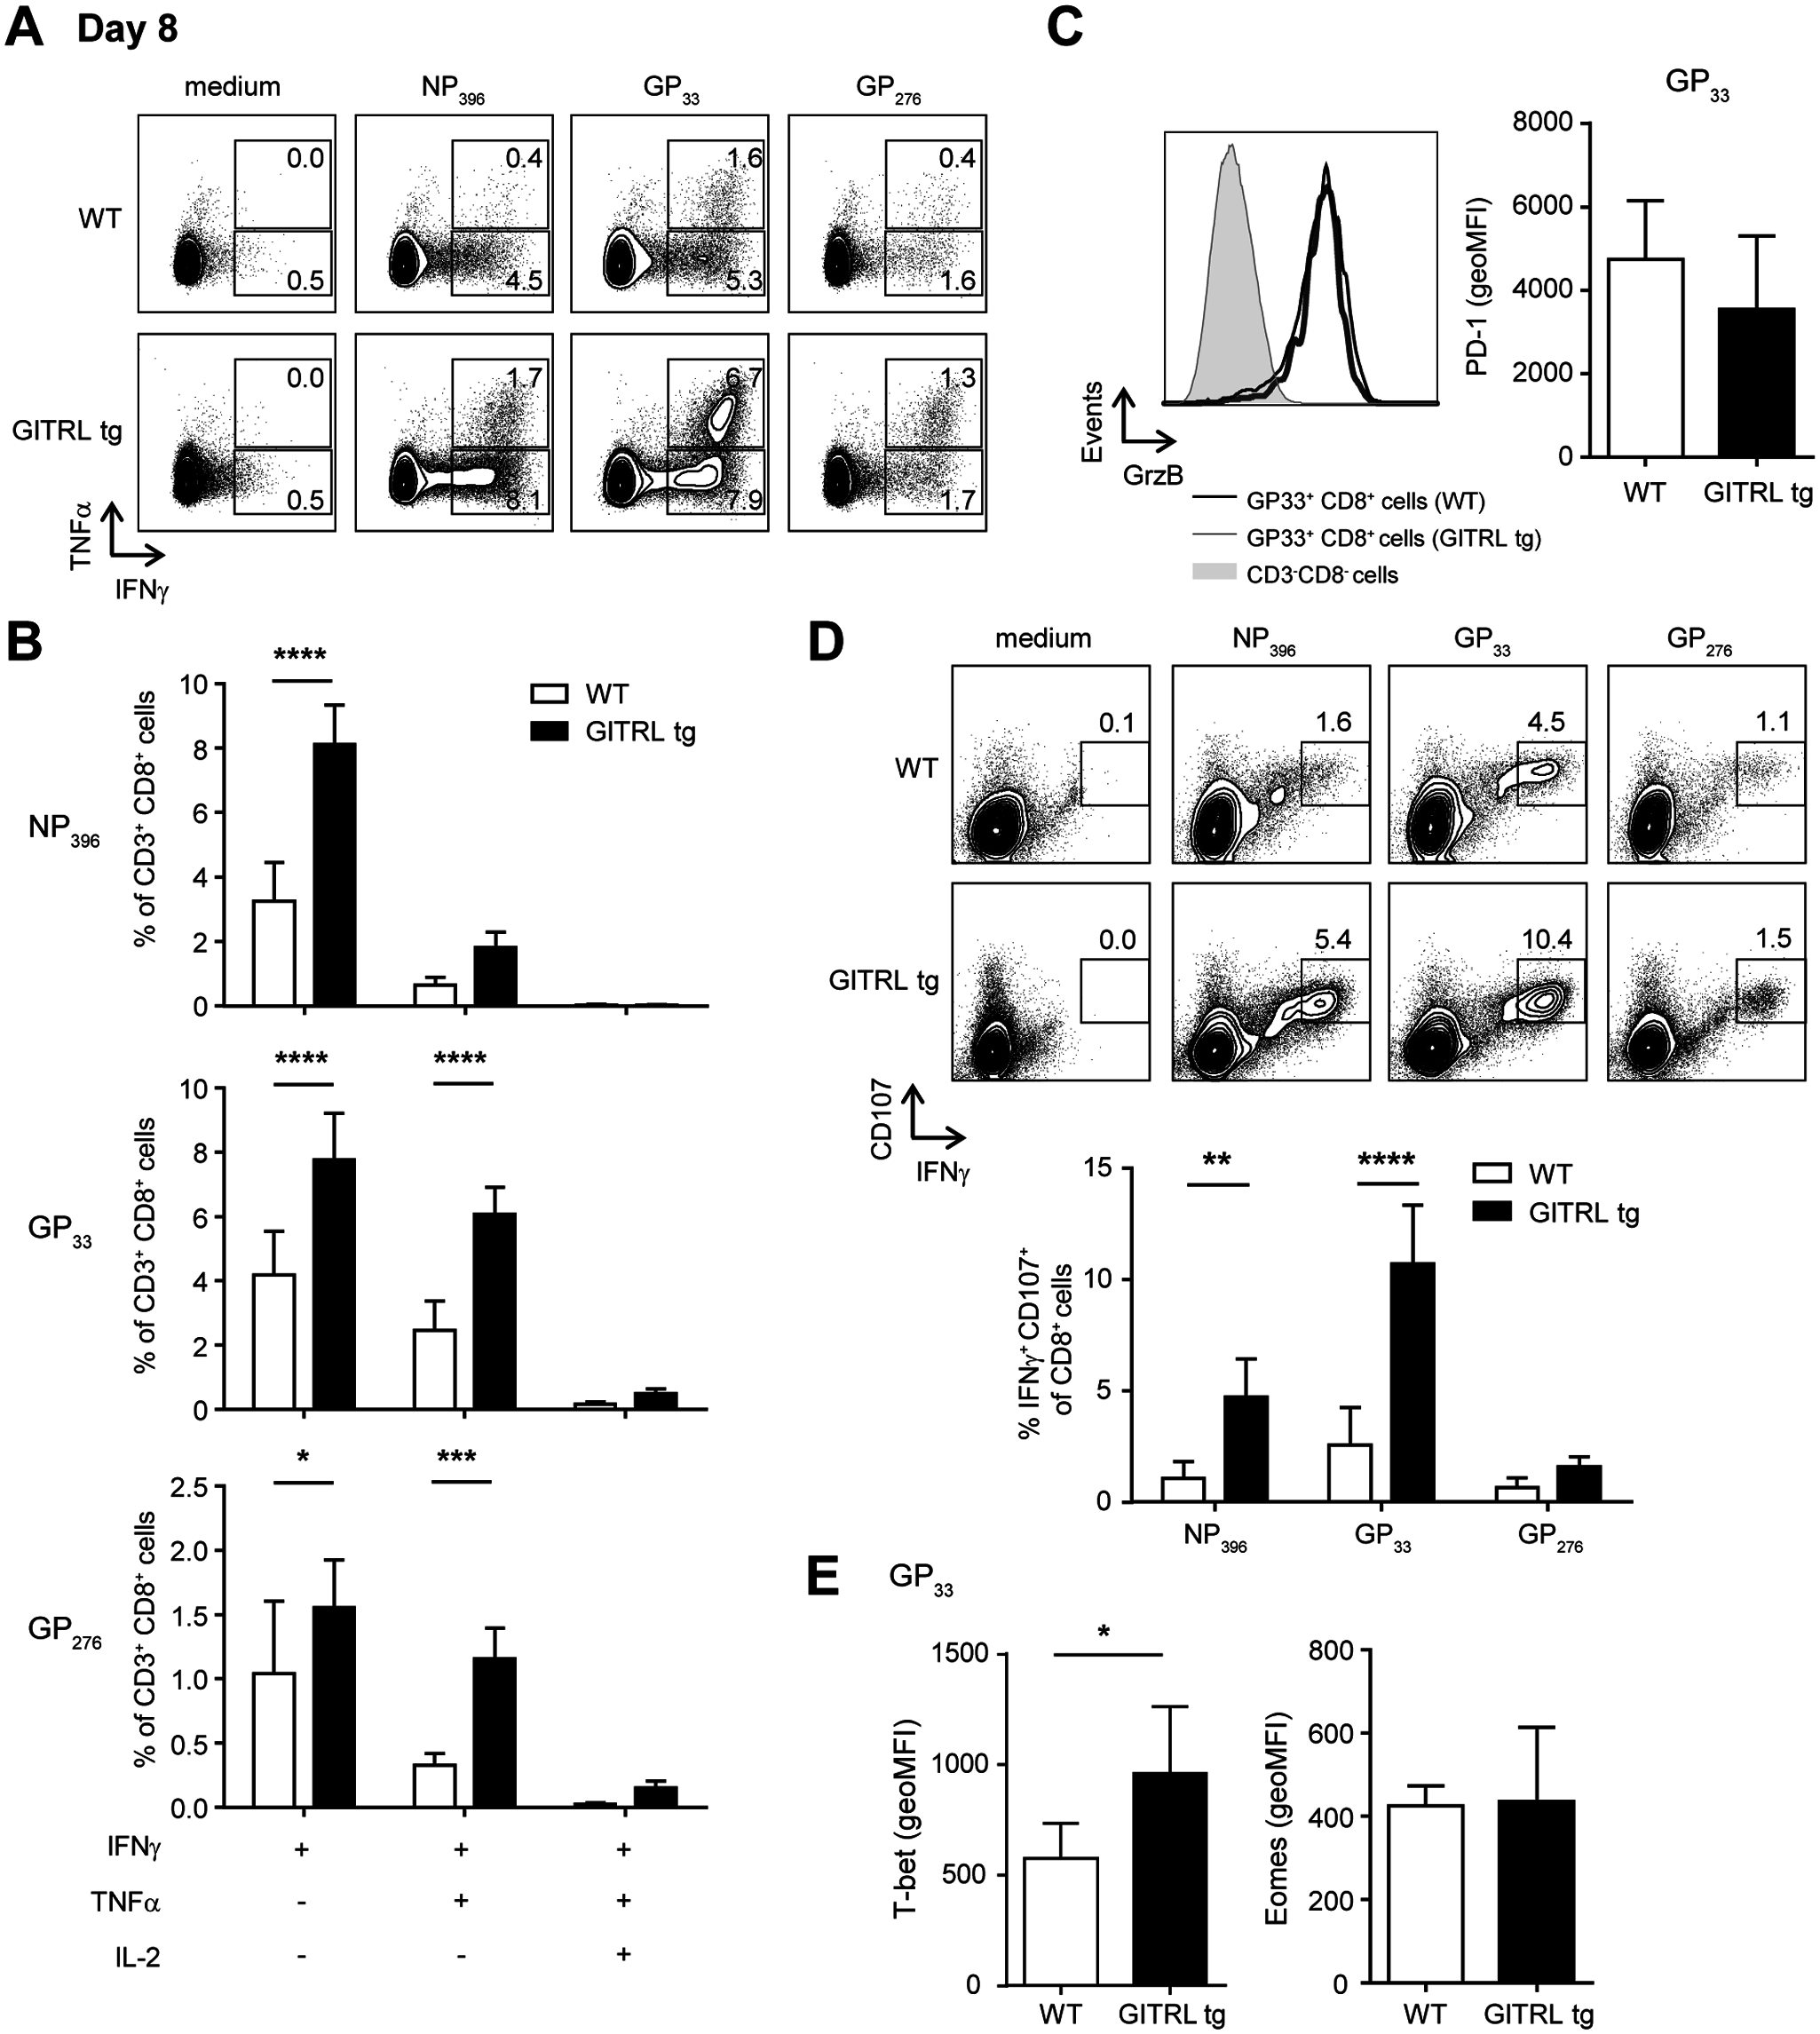 Virus-specific CD8<sup>+</sup> T cells are more polyfunctional in GITRL tg mice.